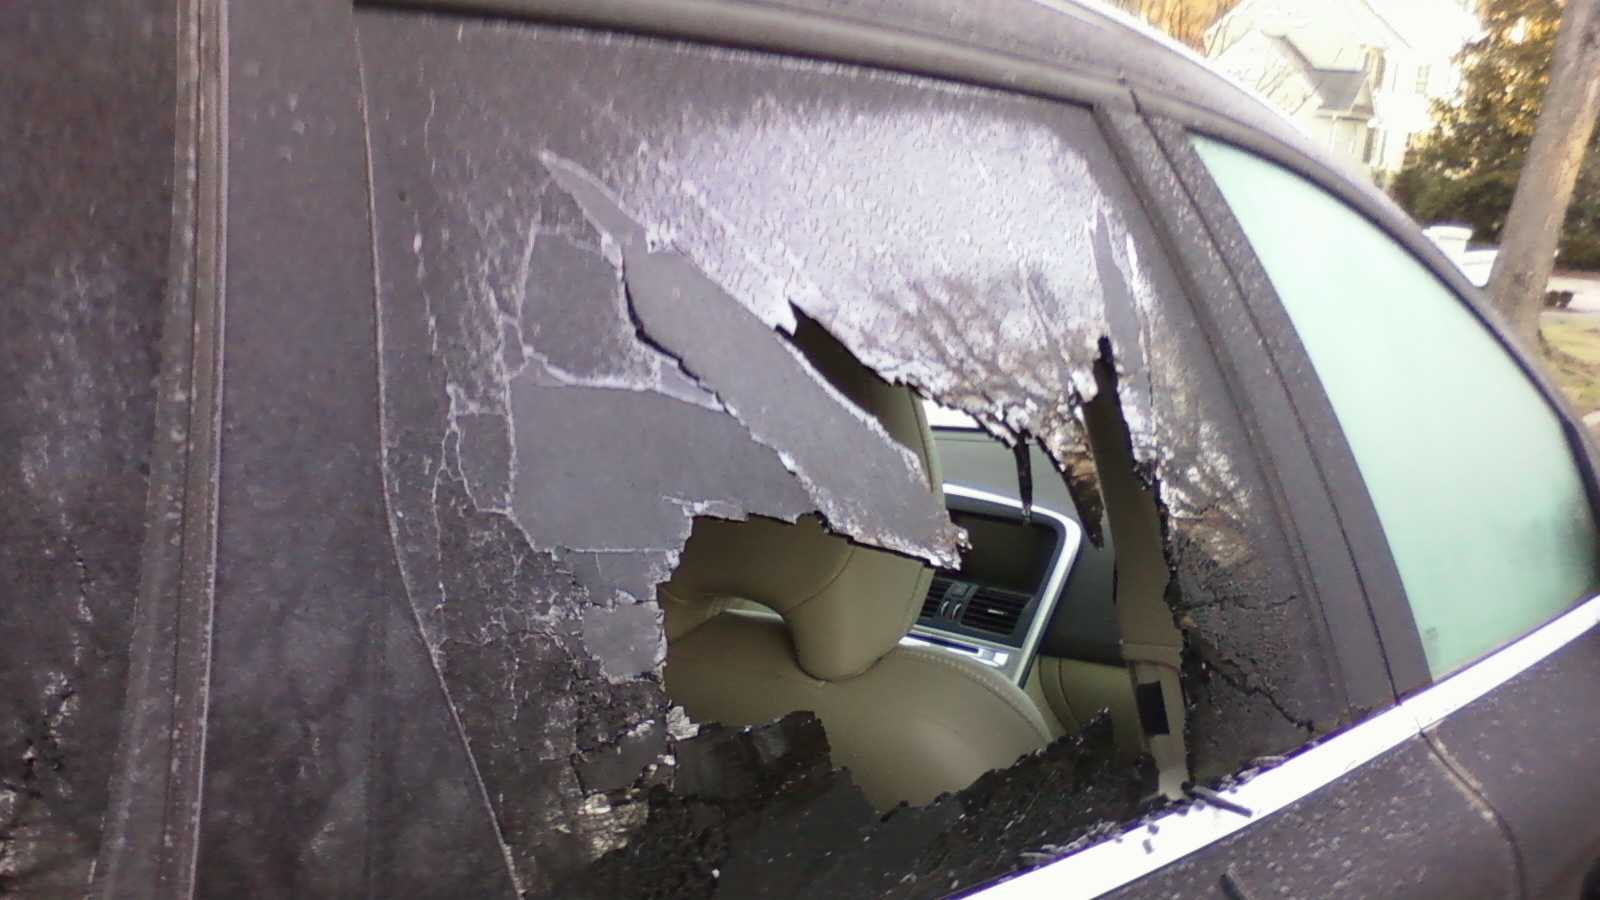 Winston-Salem police say 36 cars were vandalized late Wednesday night. It's the latest in a series of vandalism cases.